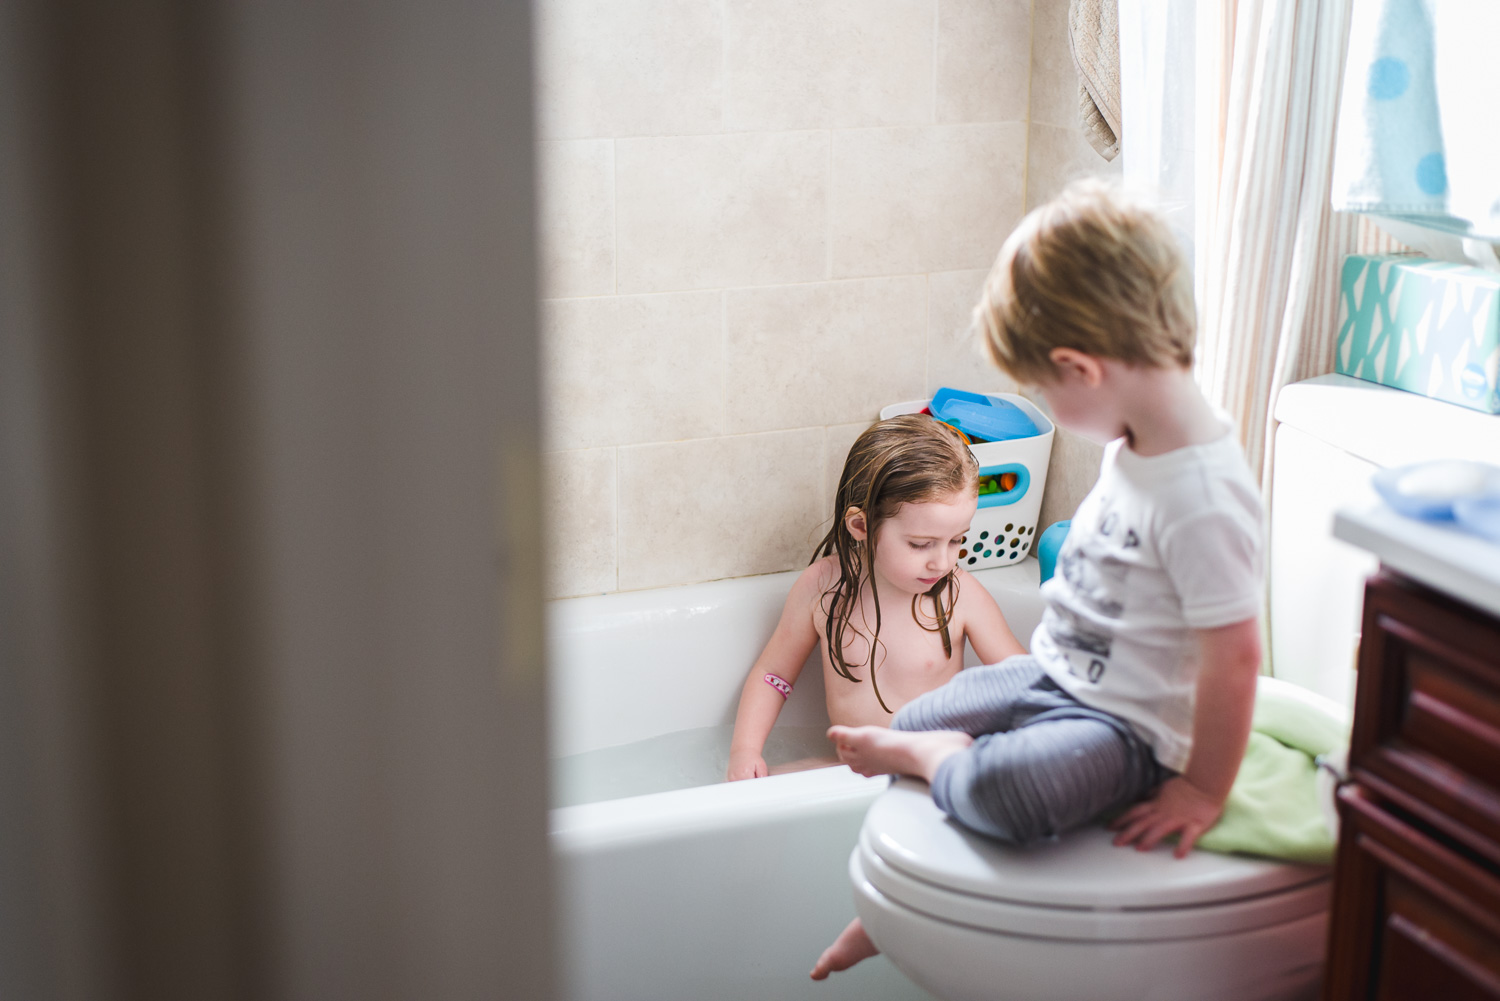 Little brother sits and talks to sister while she takes a bath.